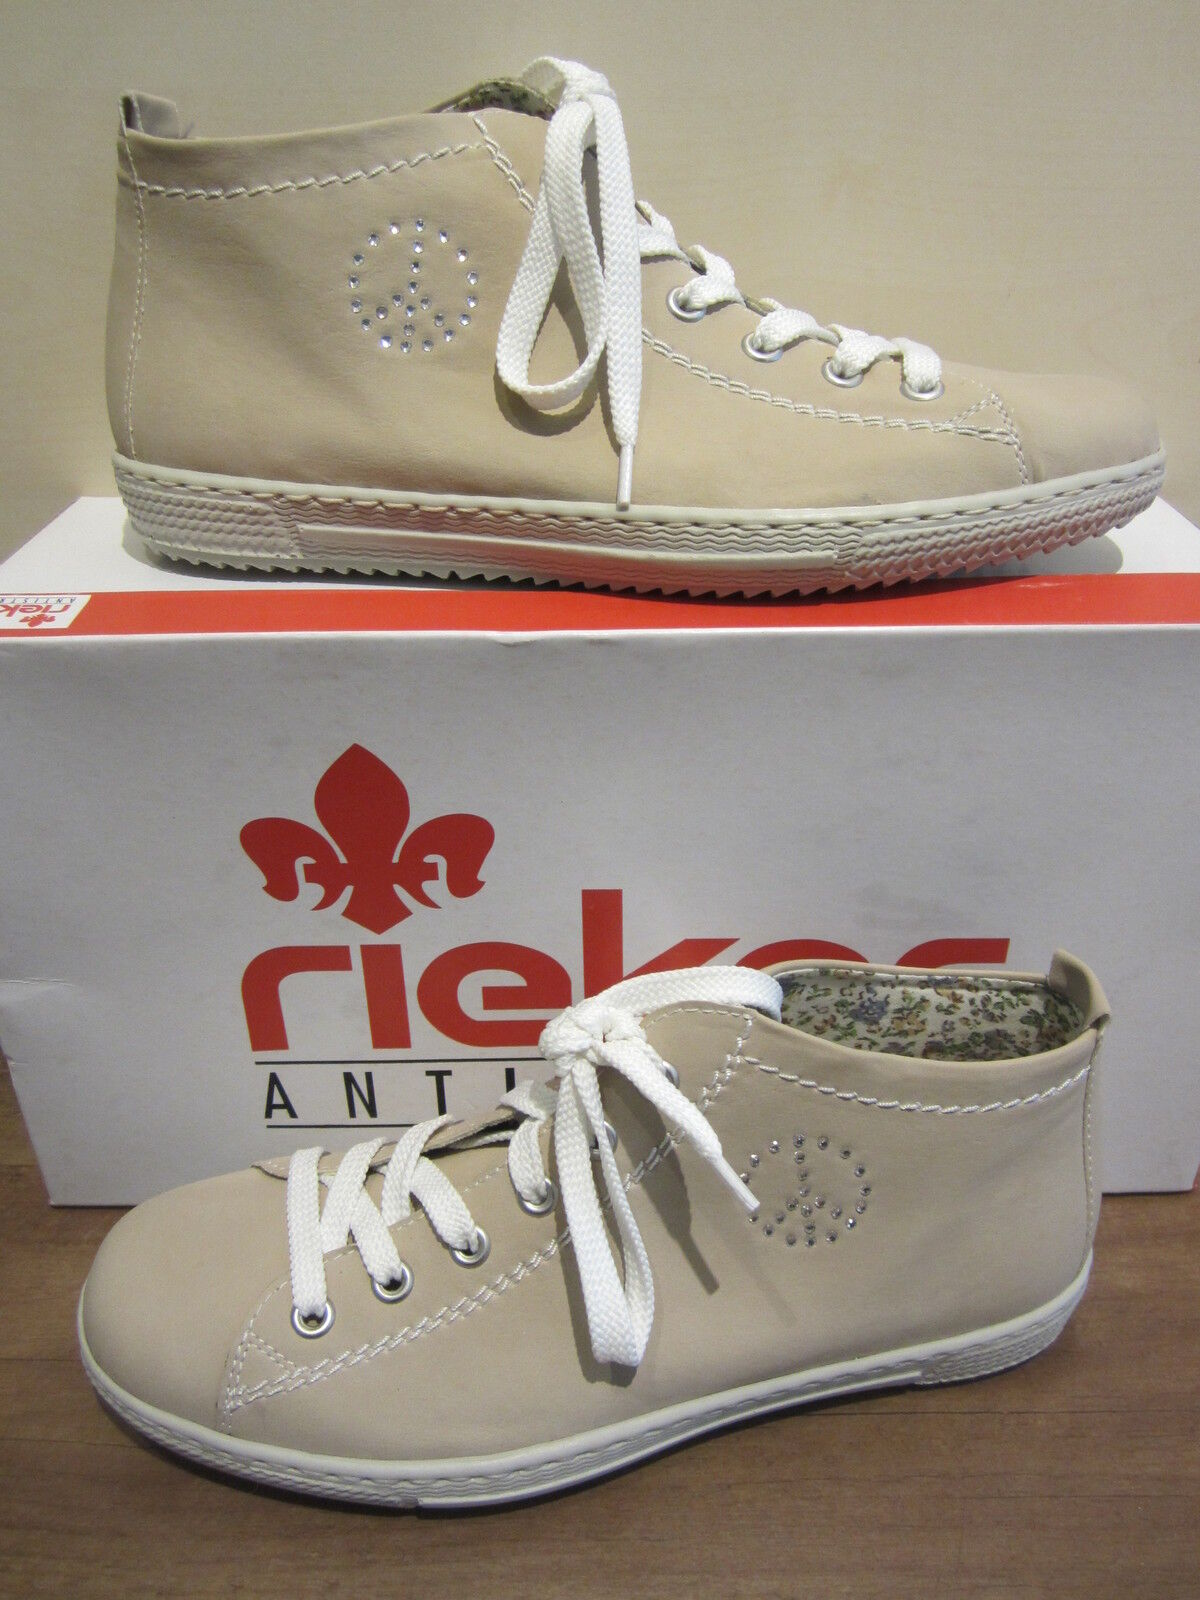 Rieker Boots, Lace Up, Boots, Beige, Sand Fabric Lining, NEW